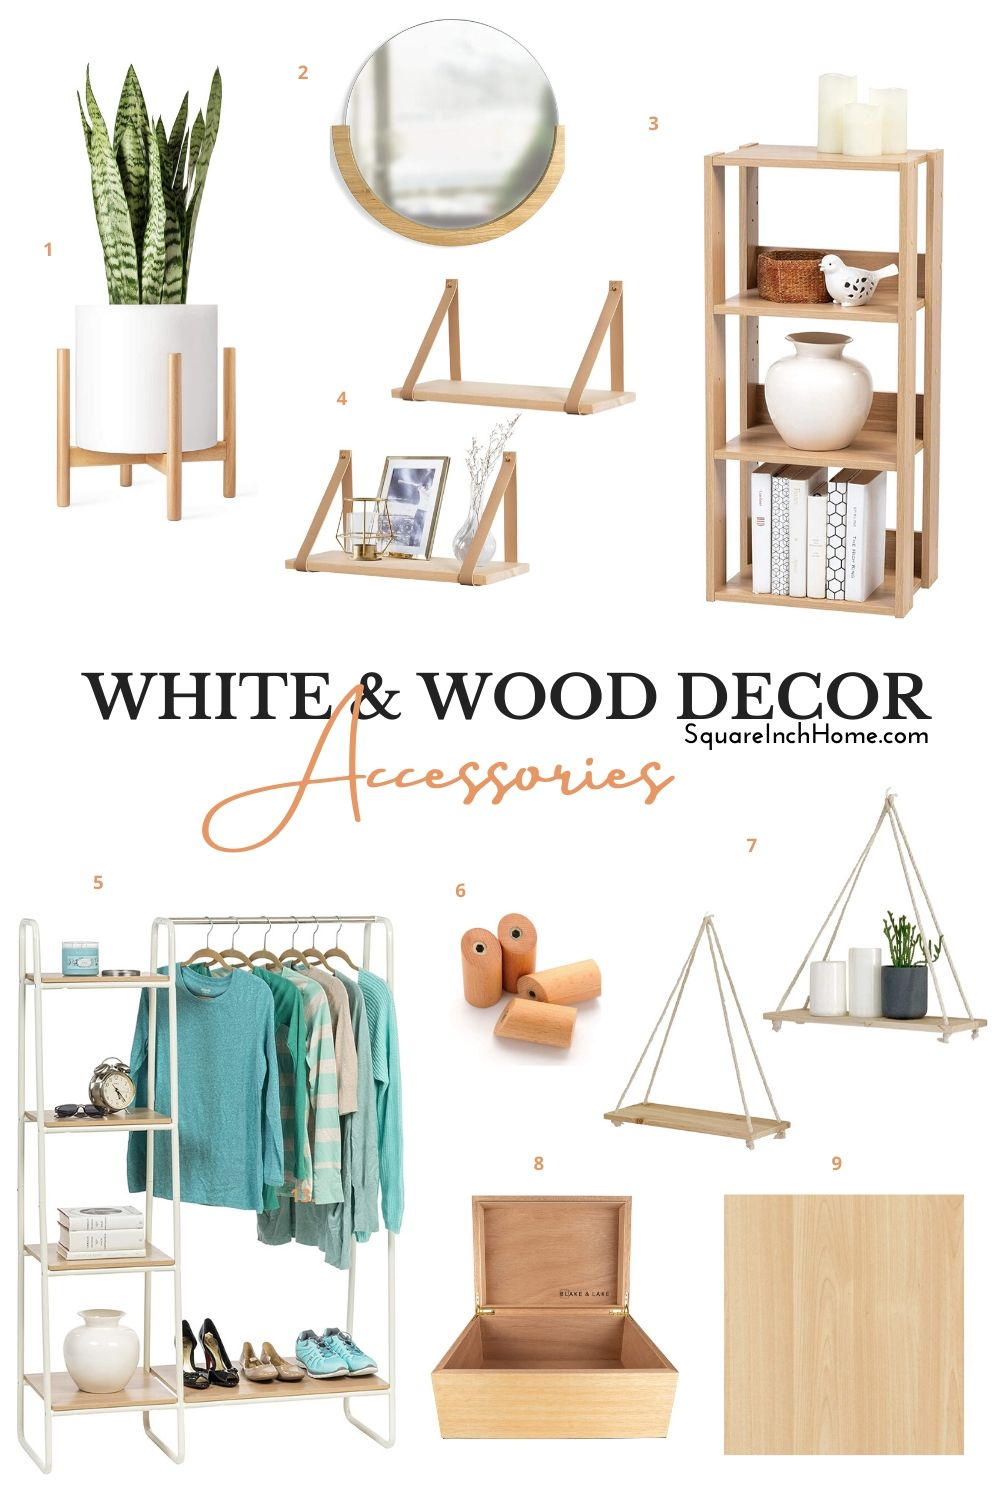 white and wood decor accessories